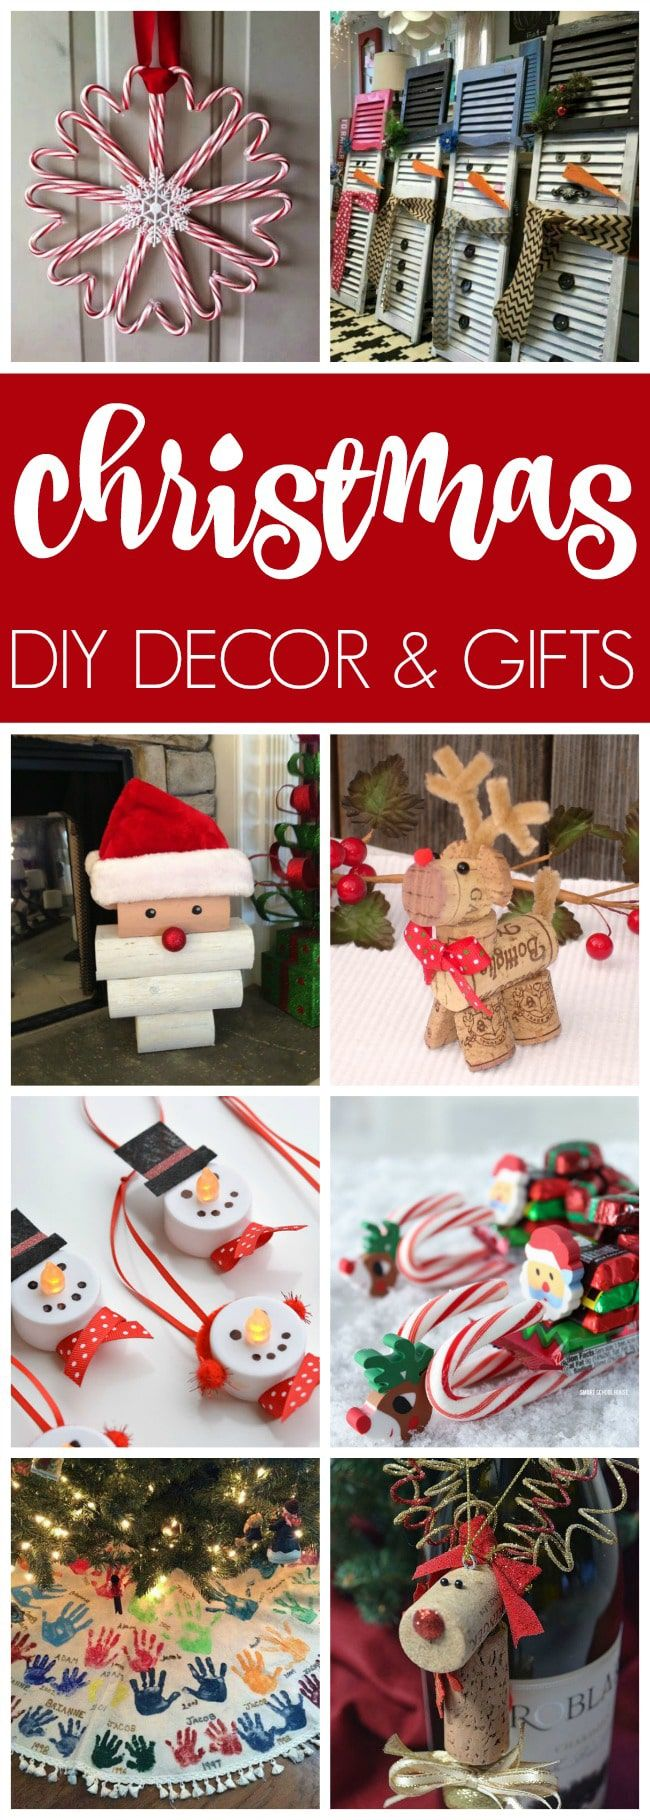 17 Epic Christmas Craft Ideas | christmas gifts | Pinterest | Craft ...